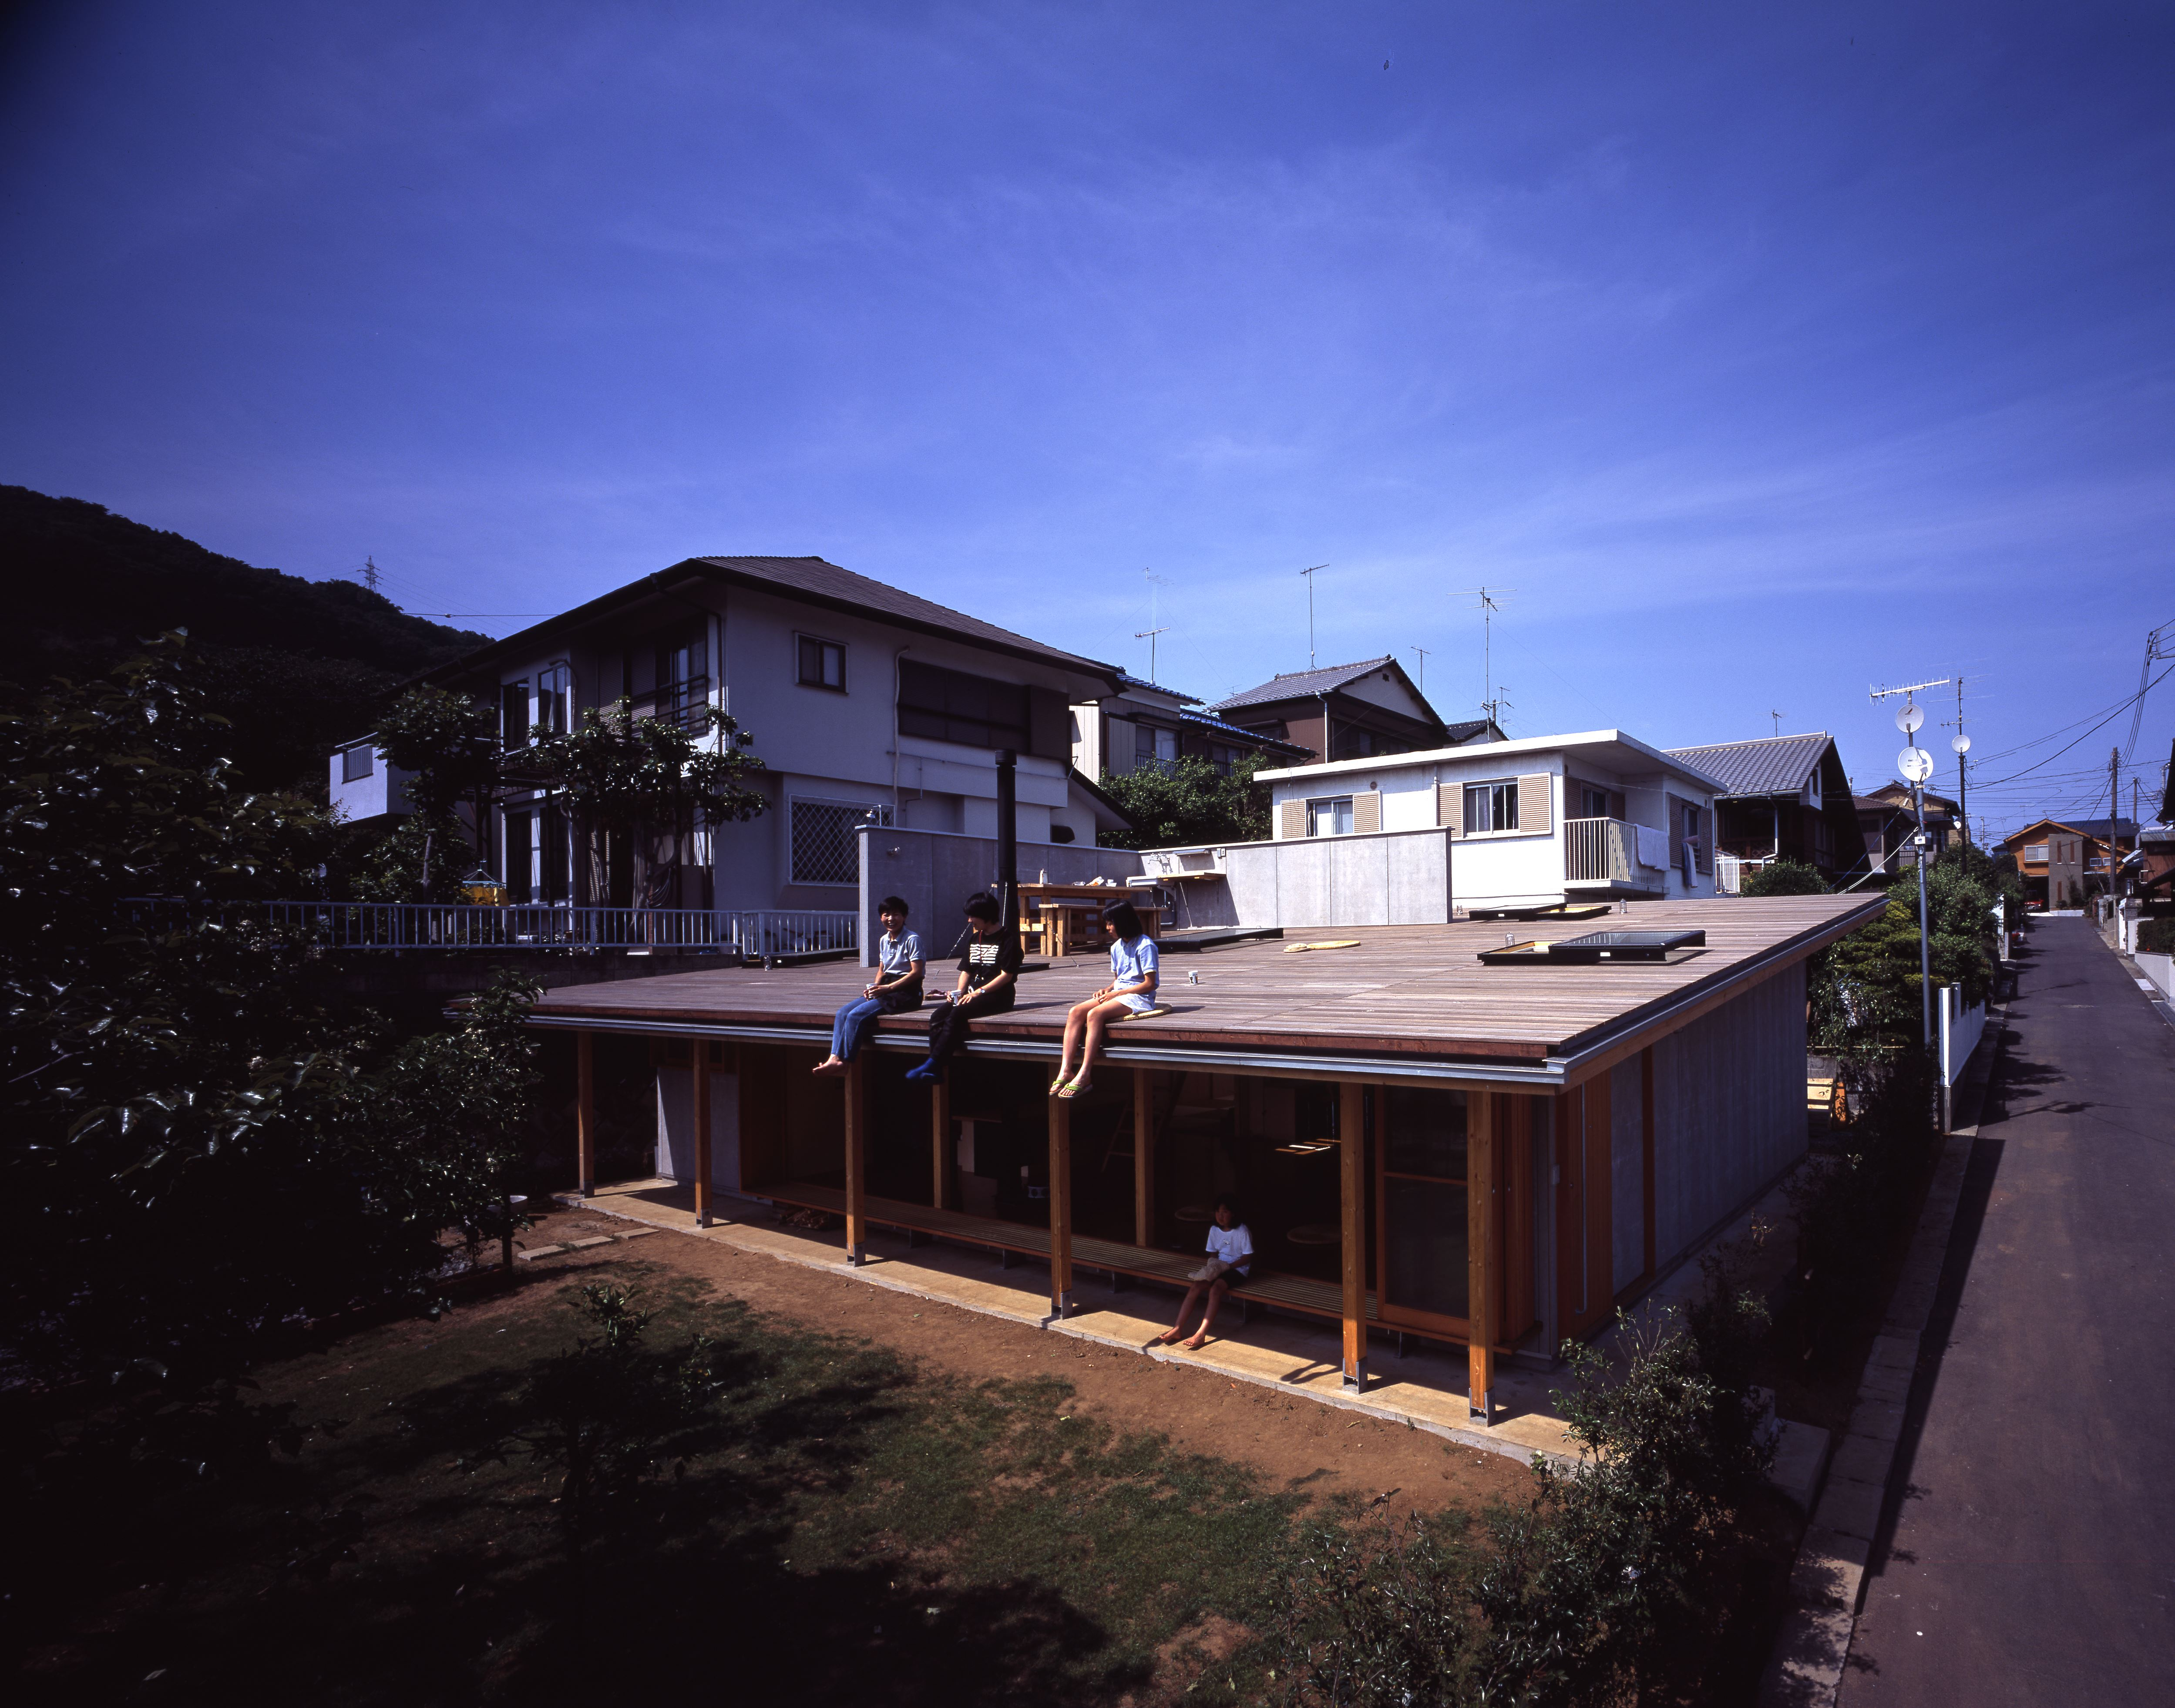 Japanese Home Architecture japan's compact, eccentric homes: a cultural history - curbed